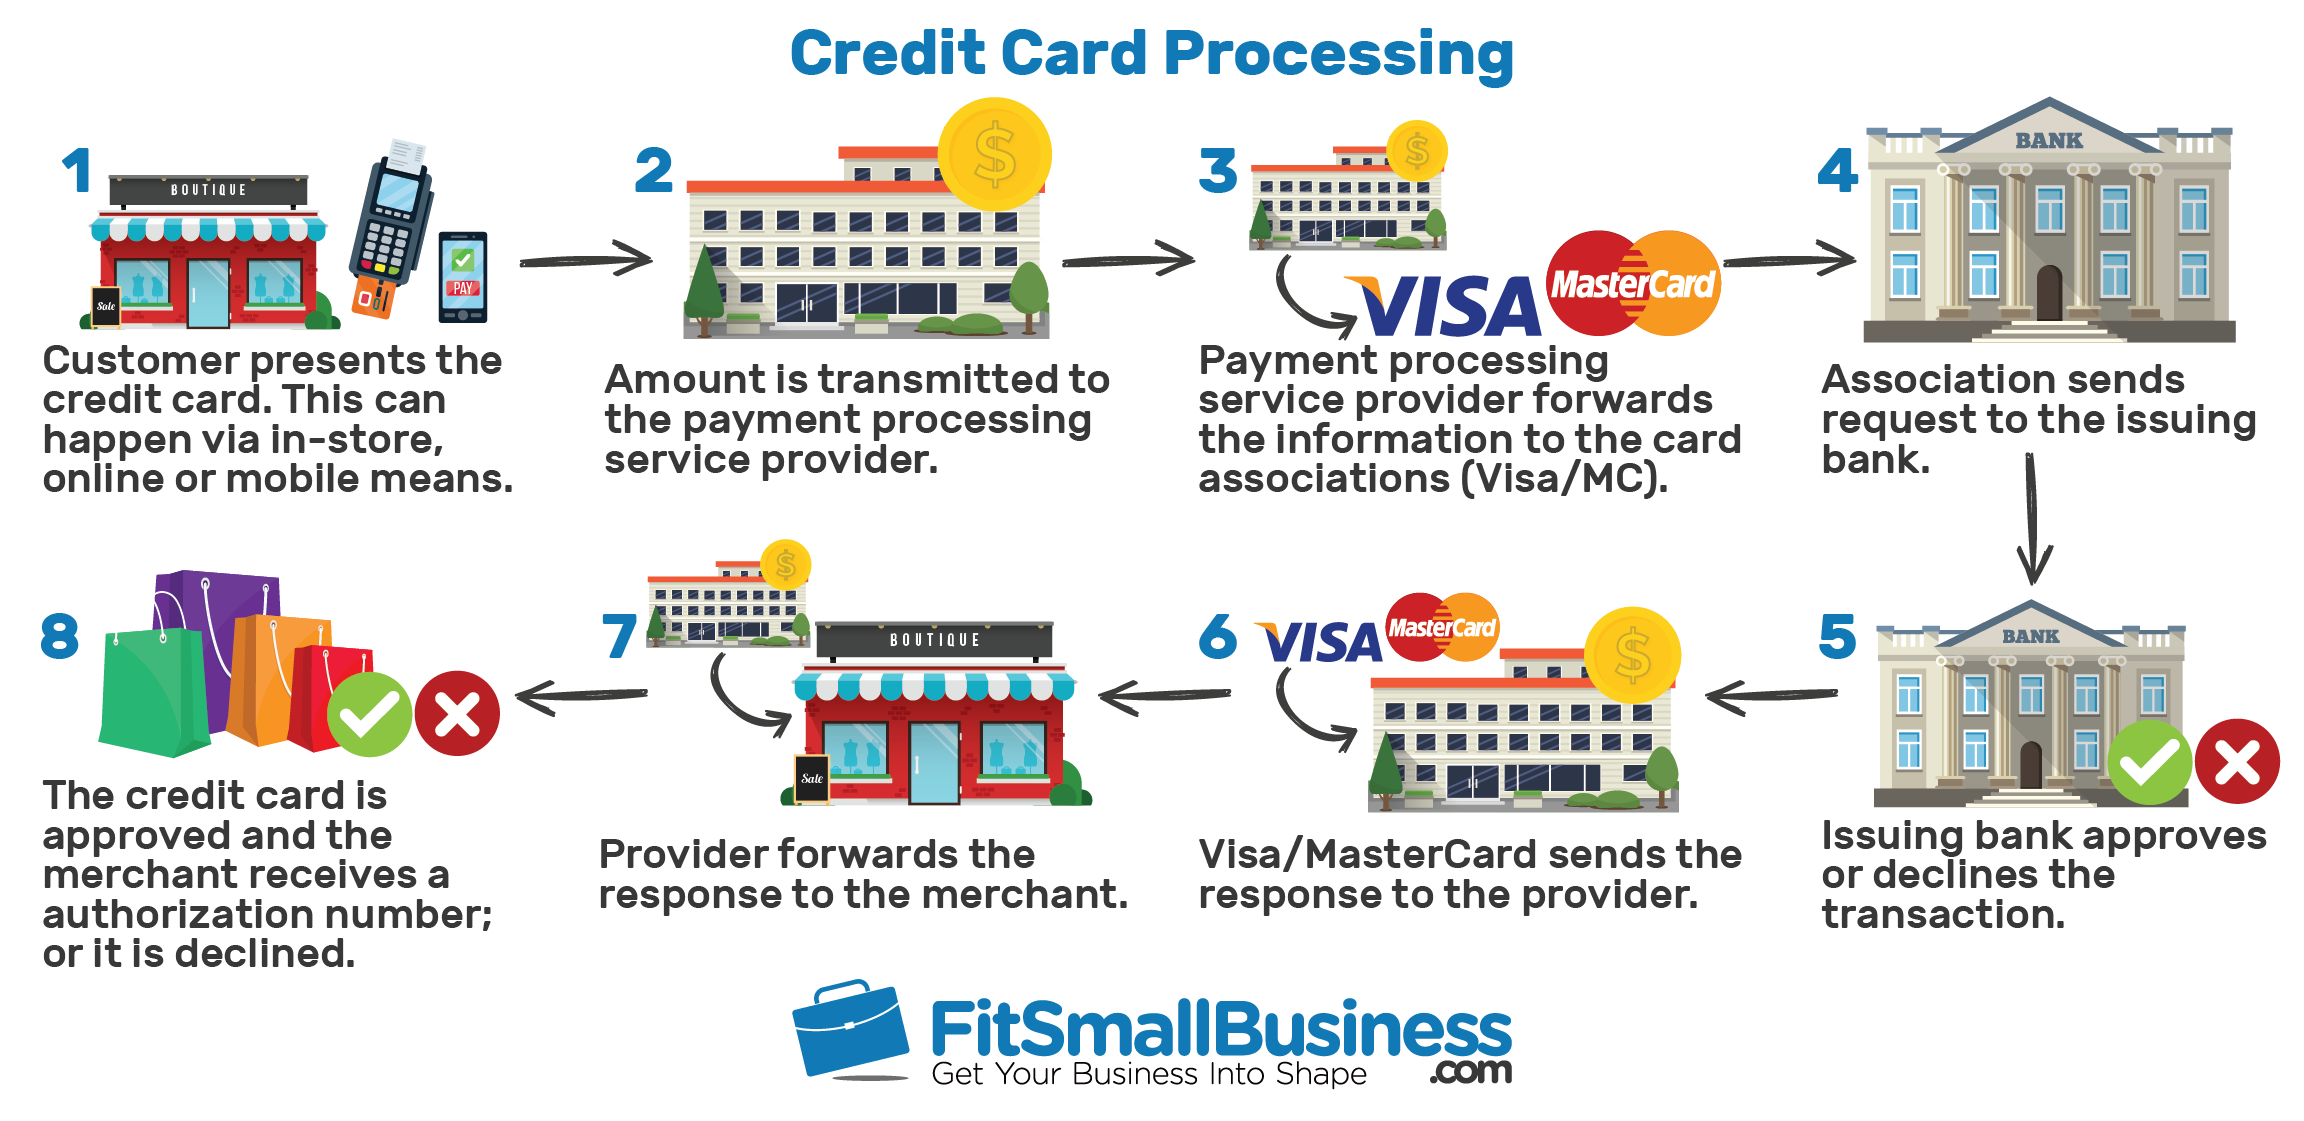 Info graphic showing how credit card processing works